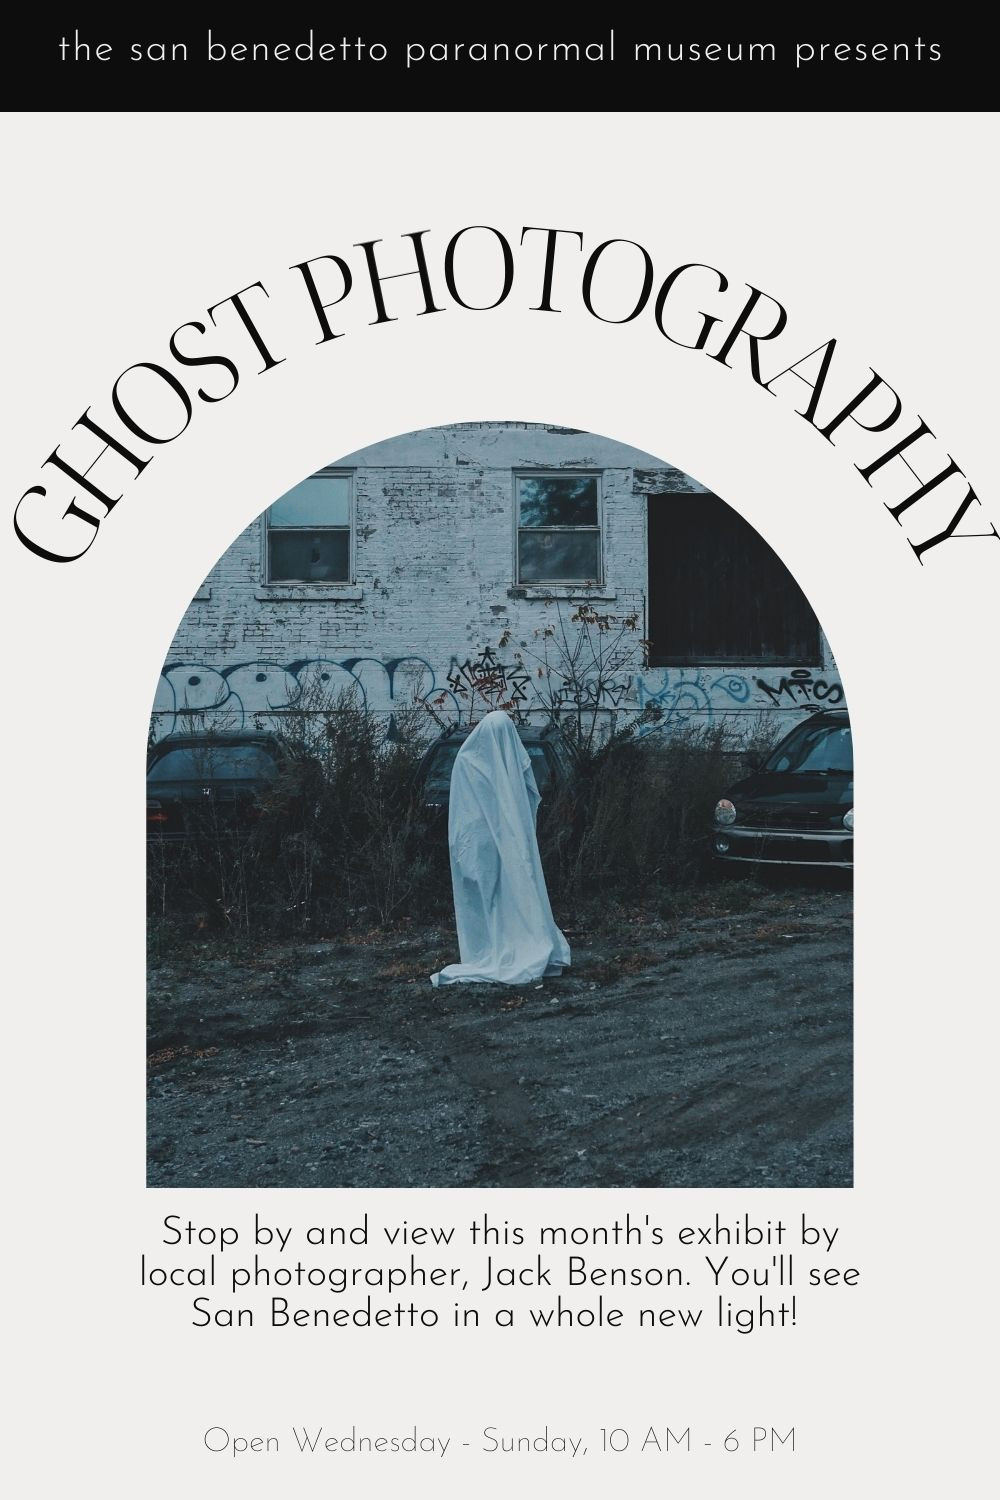 the San Benedetto Paranormal Museum presents ghost photography! Stop by and view this month's exhibit by local photographer, Jack Benson. You'll see San Benedetto in a whole new light!